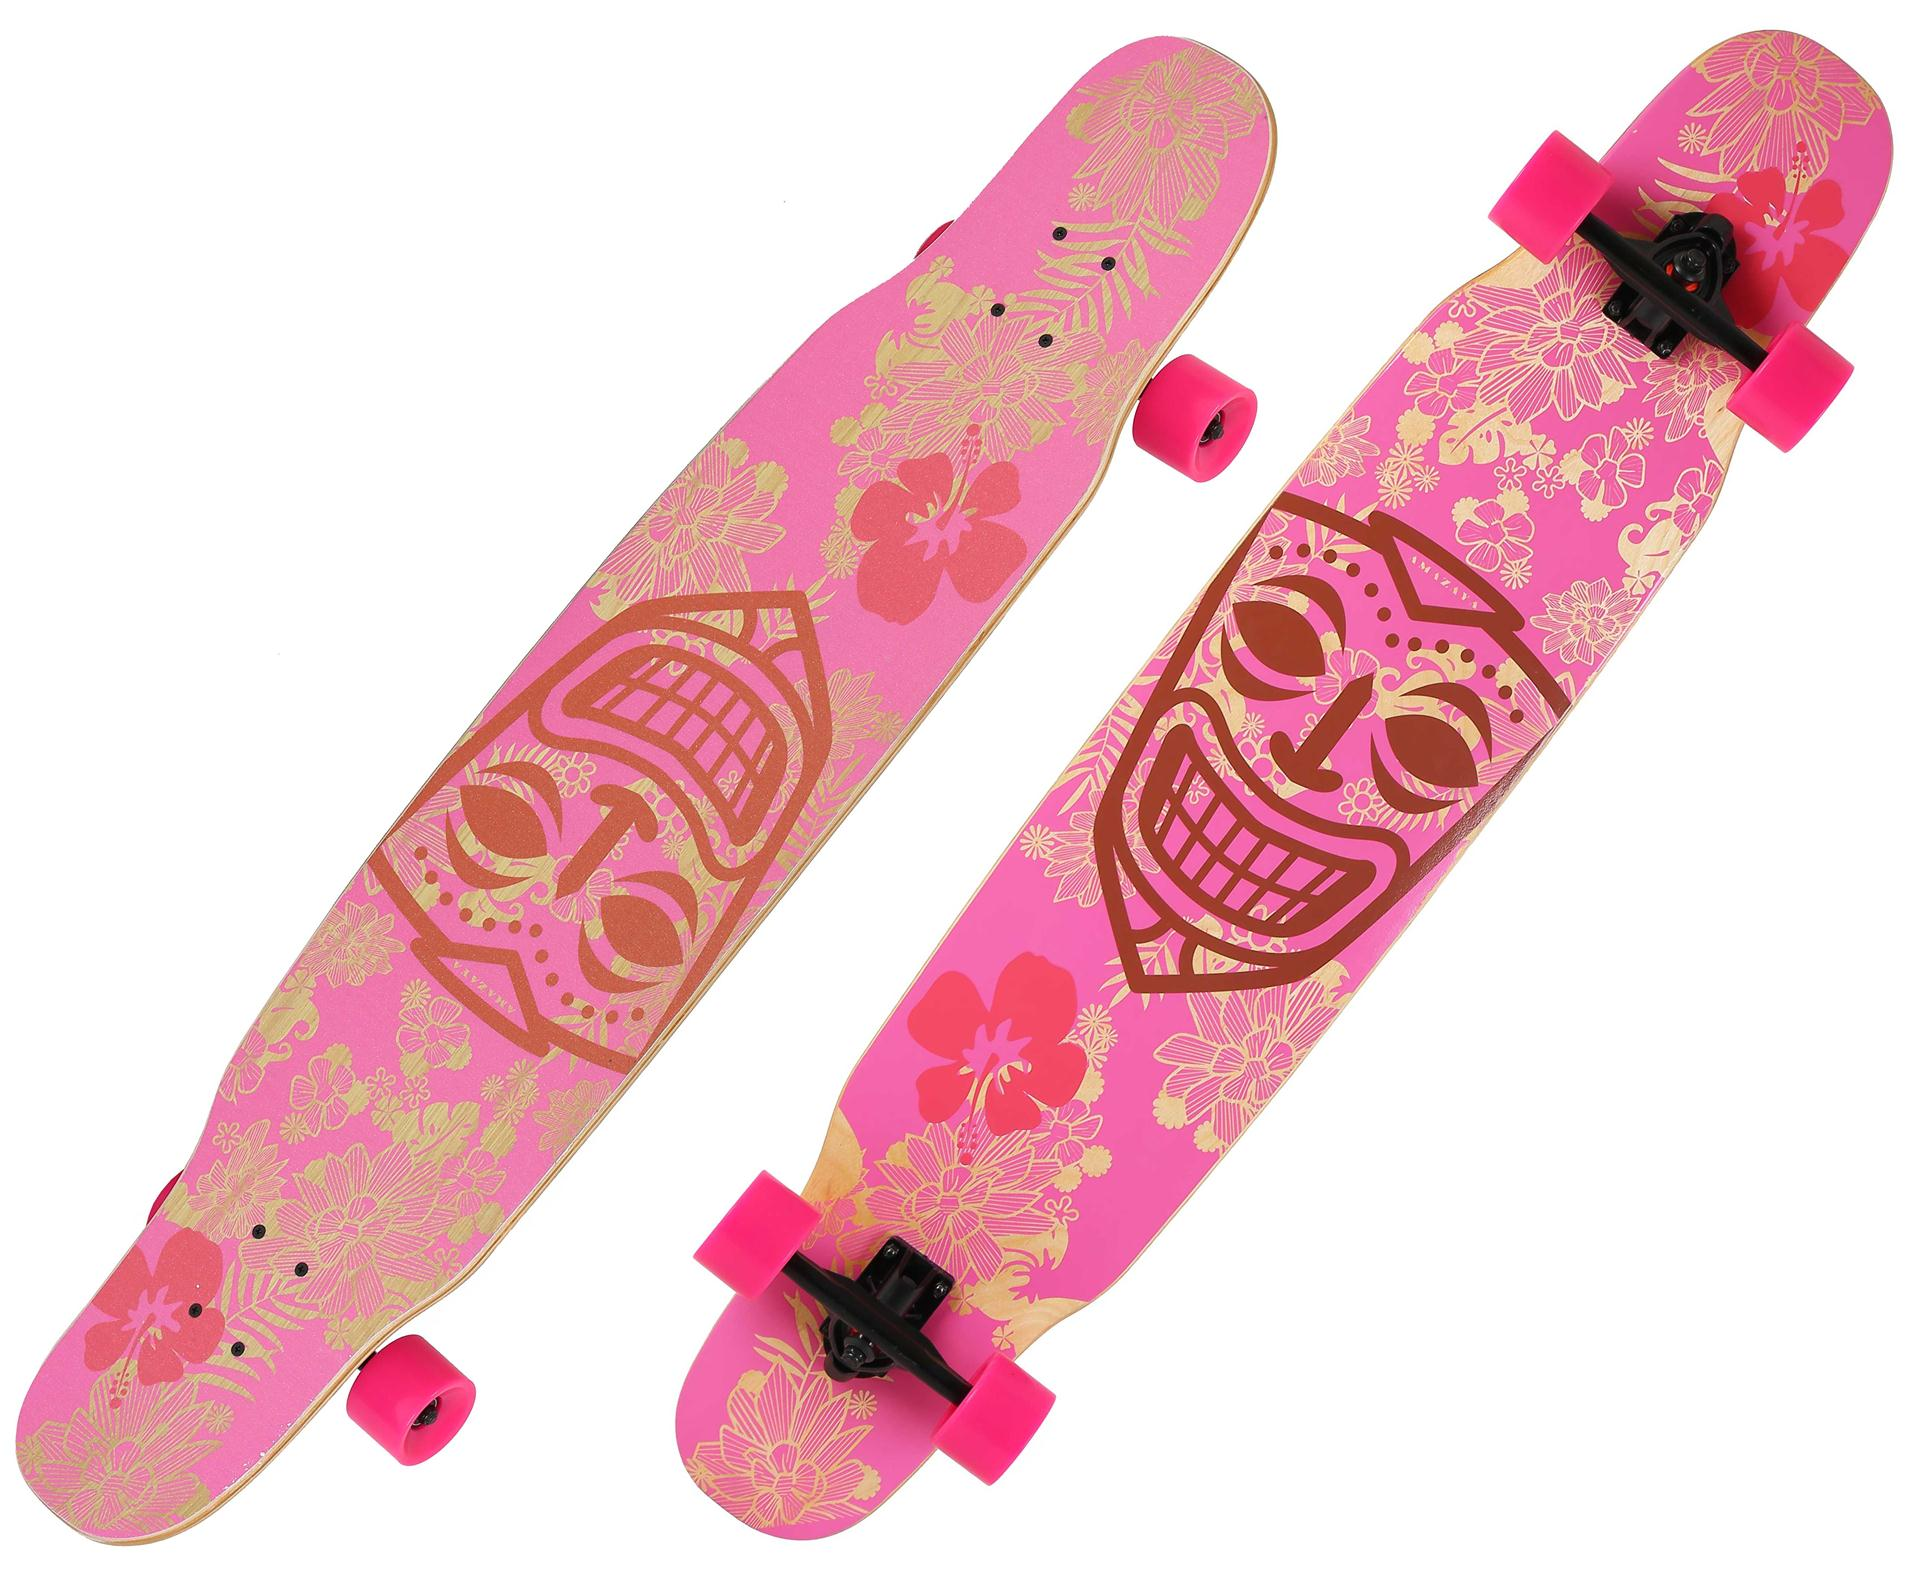 Girls' Dance longboard 46inch maple longboard colorful griptape graphics OEM dancing longboard